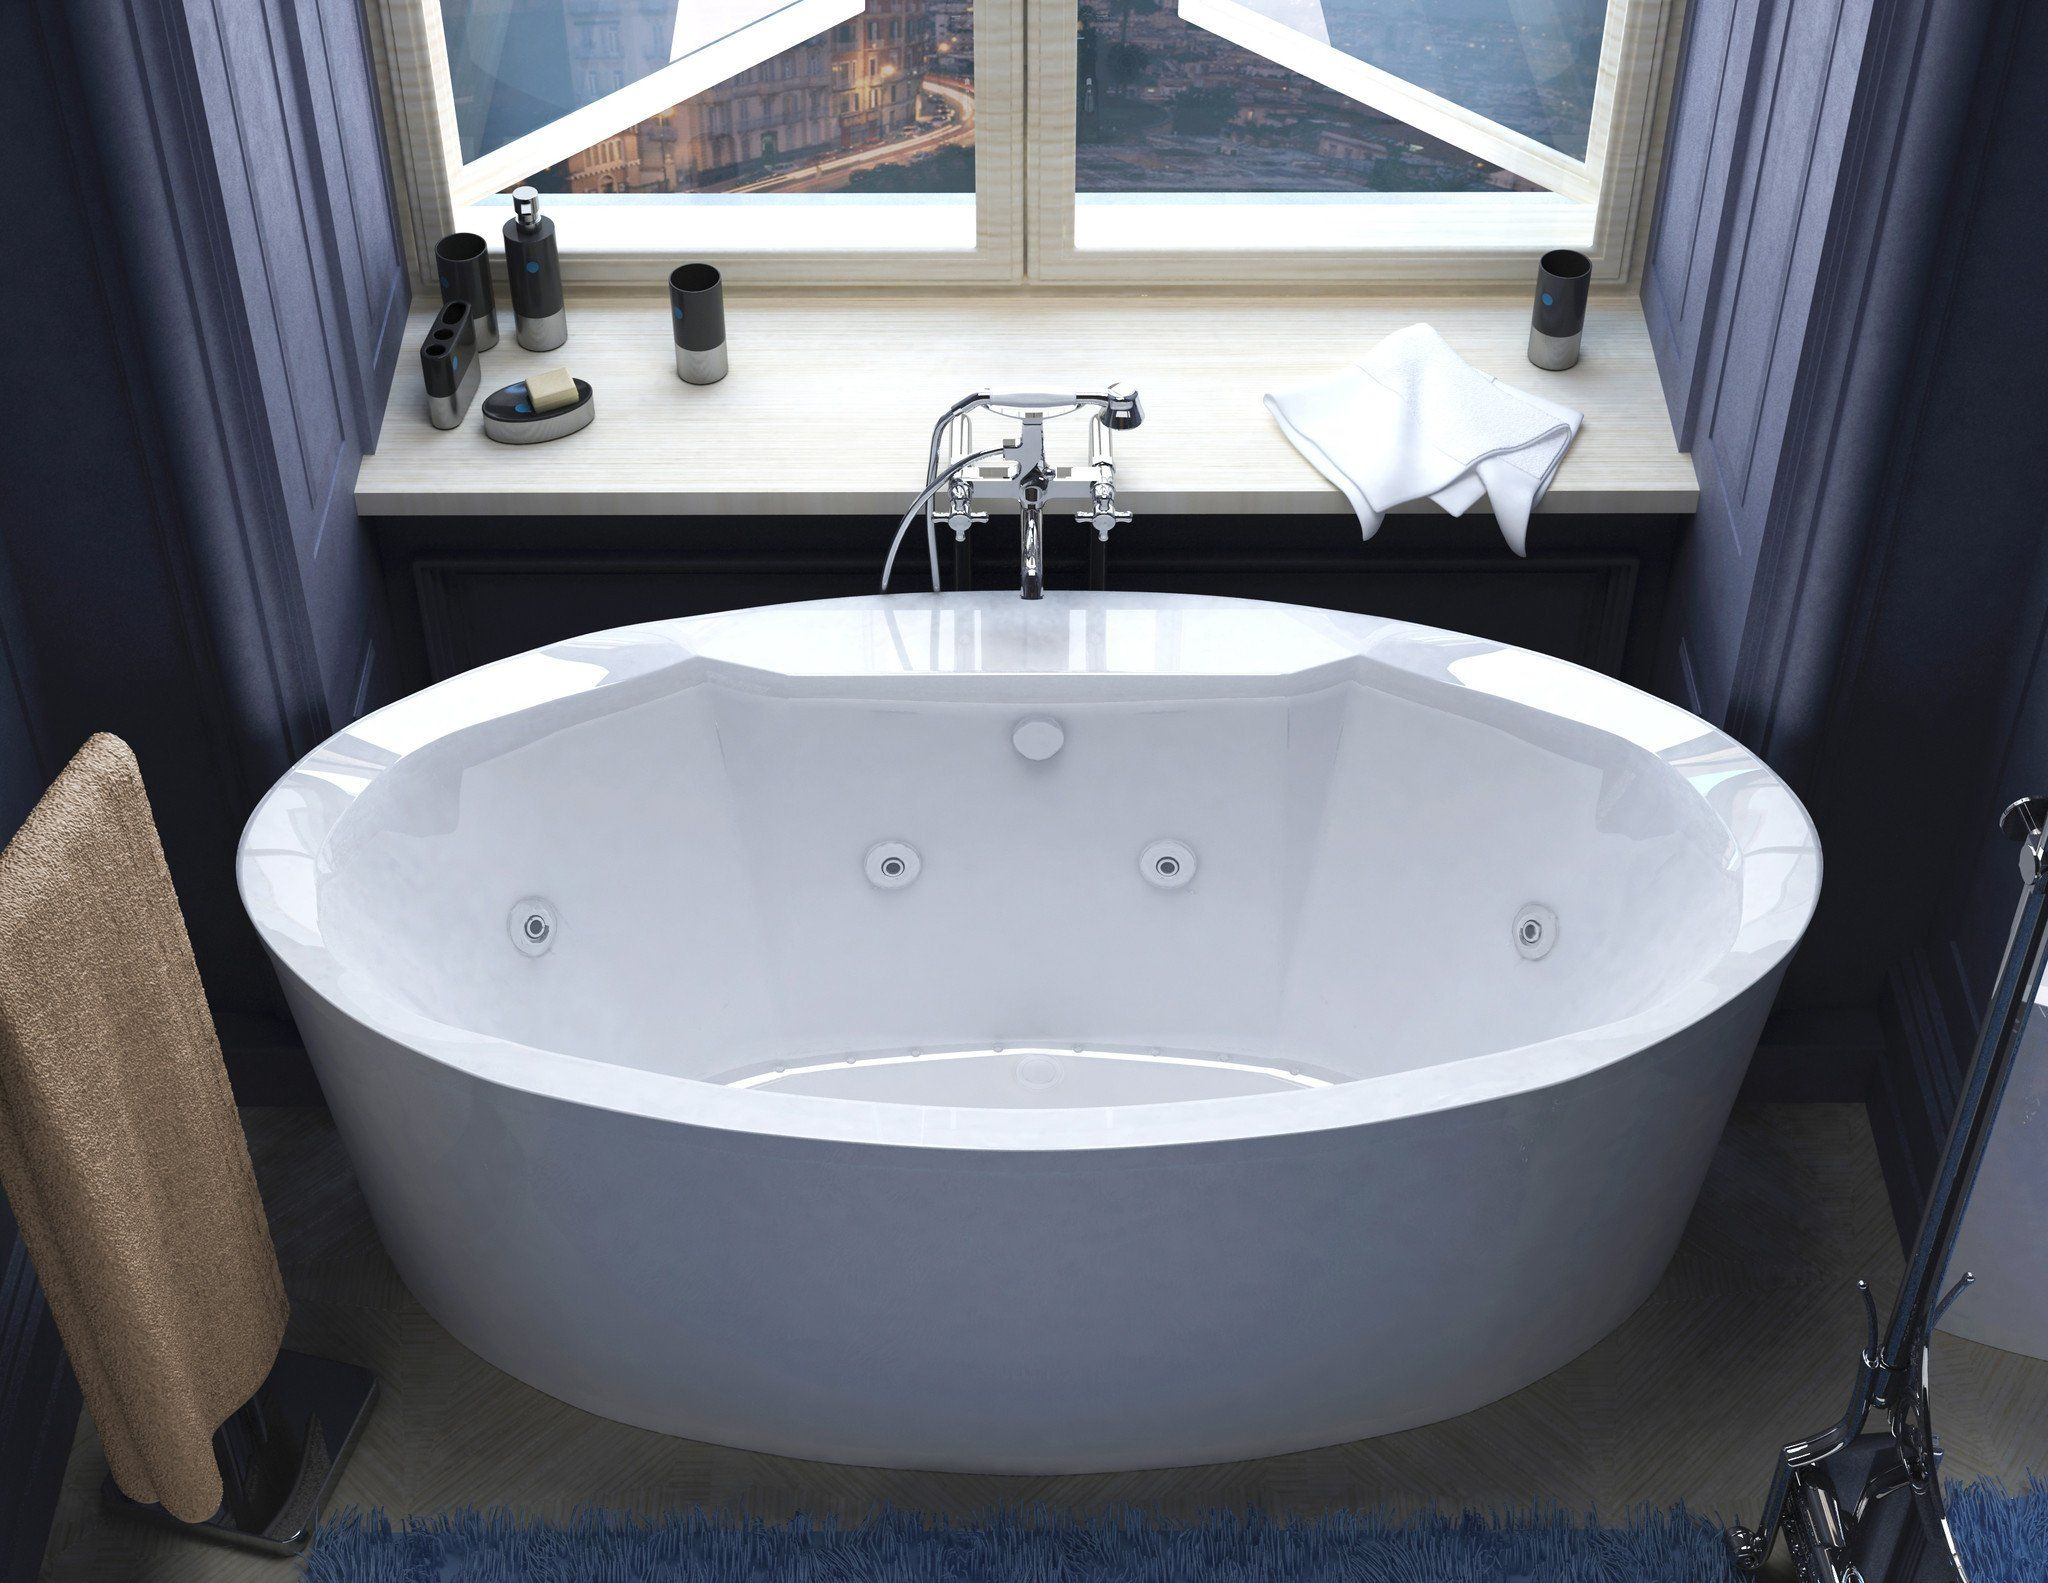 Atlantis Whirlpools 3468SD Suisse 34 x 68 Oval Freestanding Air ...